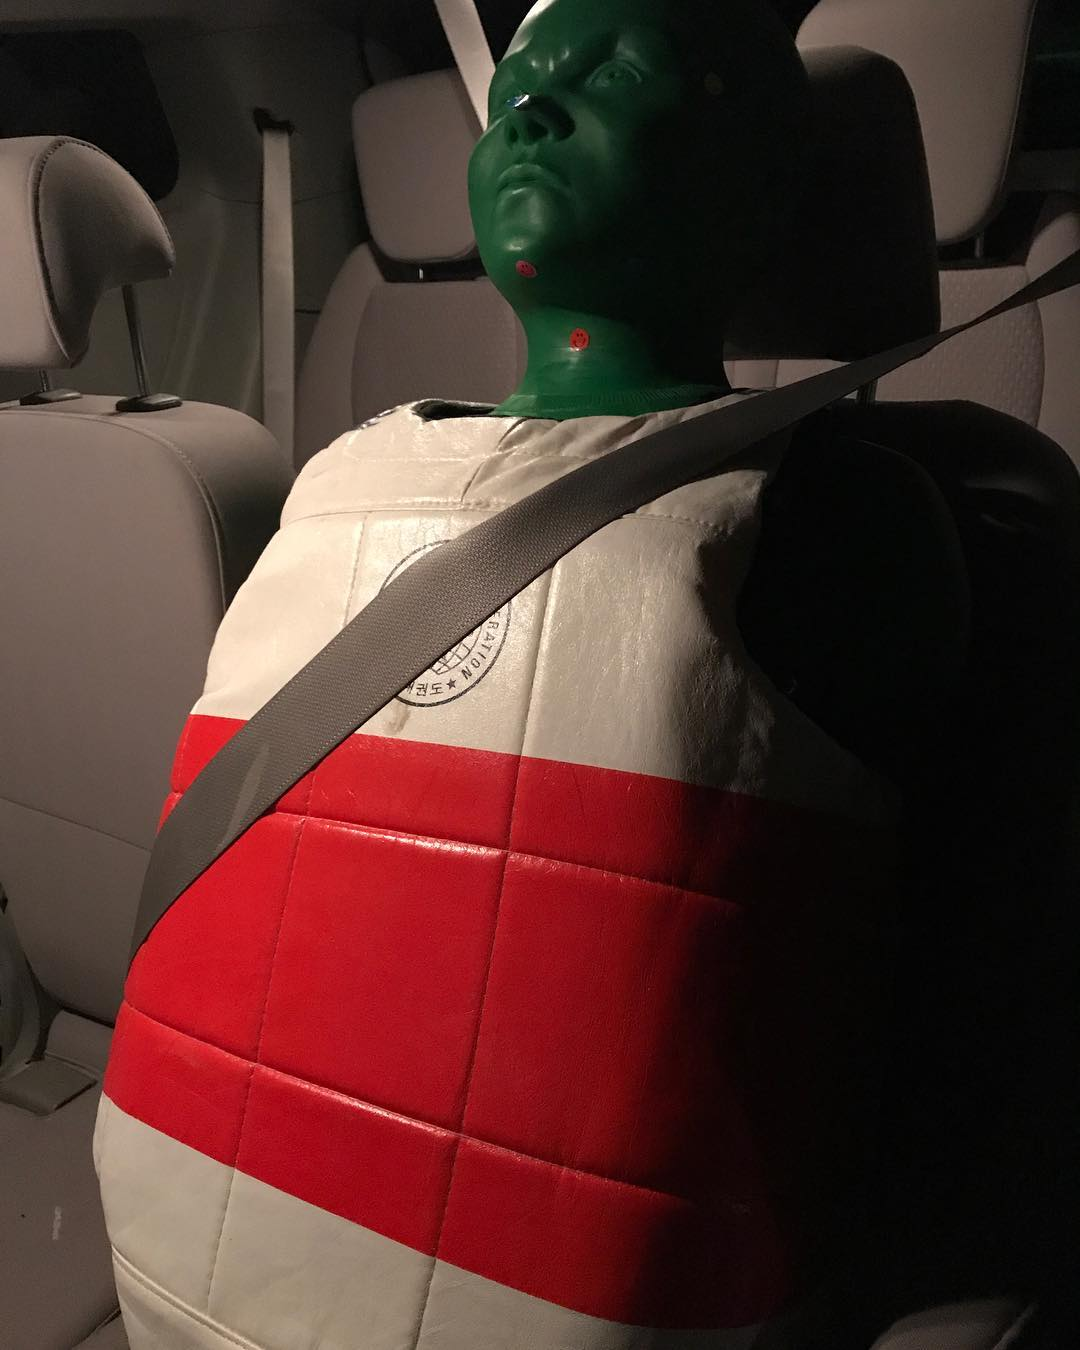 #karate #lifehack – buckle B.O.B. into a car seat so you can drive in the #carpool lane. #martialarts #humor #funny #lotd #picoftheday